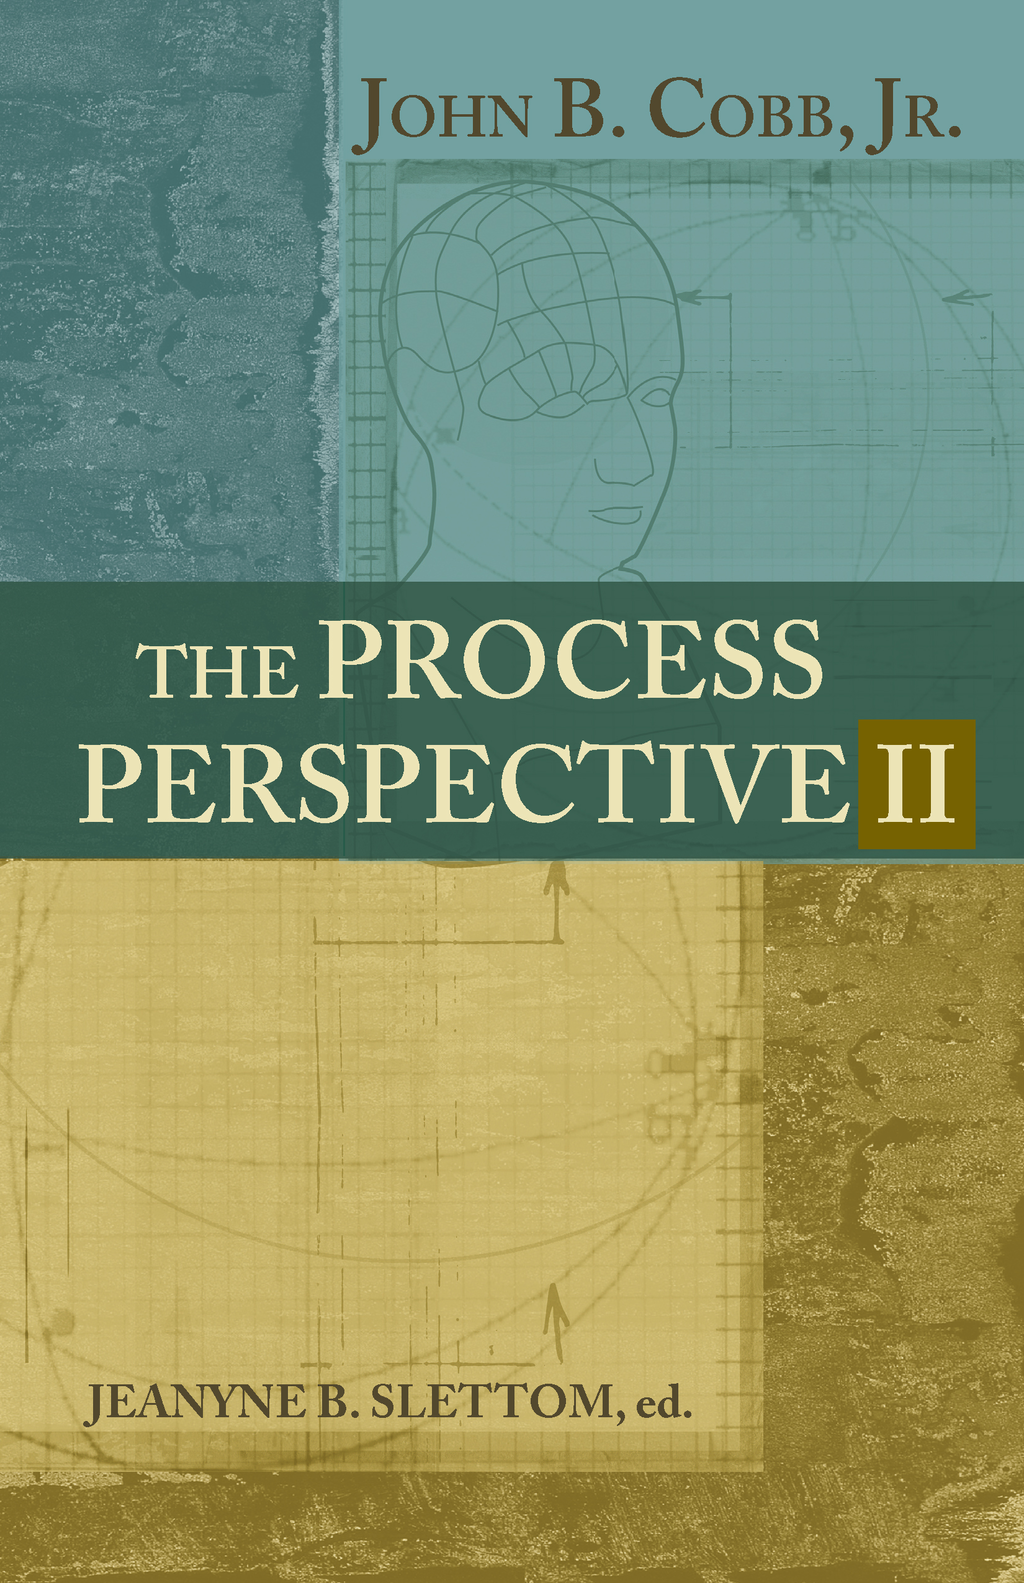 The Process perspective II By: John B Cobb Jr.,Jeanyne B. Slettom